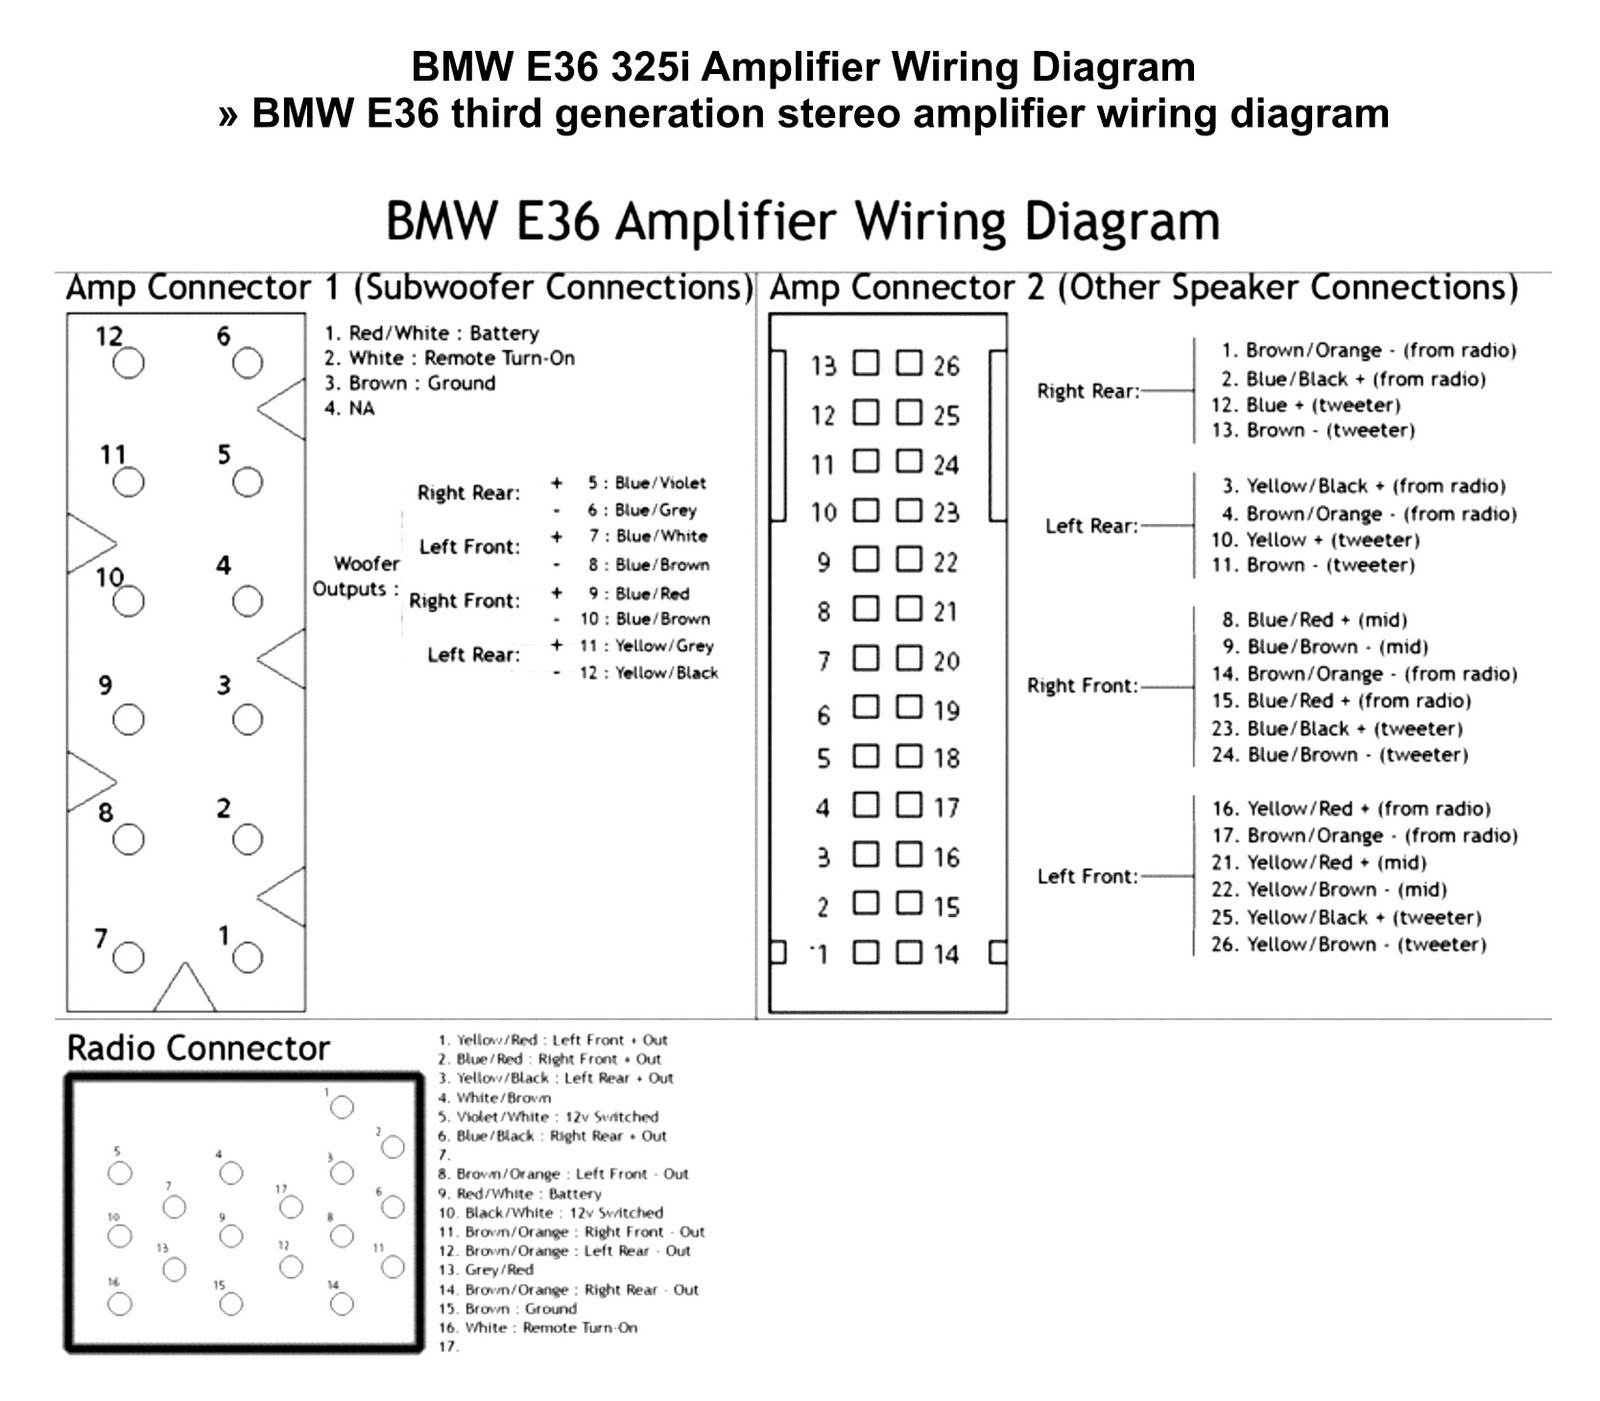 [WLLP_2054]   MW_5476] 1986 Bmw Wiring Diagram As Well As Radio Wiring Diagram Along With  Bmw Download Diagram | 1993 Bmw 325i Stereo Wiring |  | Heeve Scoba Mohammedshrine Librar Wiring 101